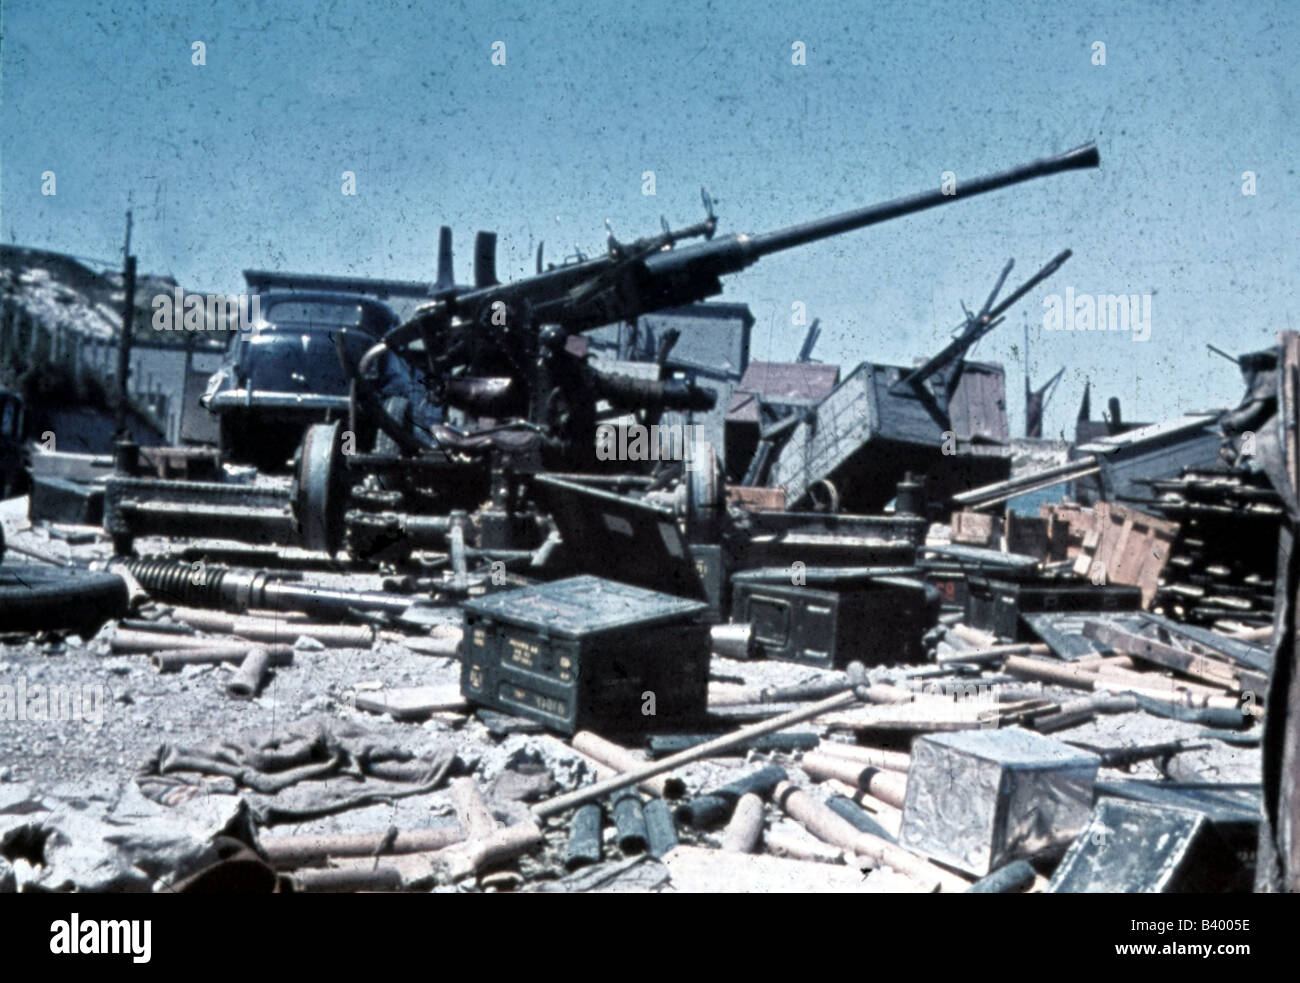 defeat in war. stock photo events second world warwwii france dunkirk june 1940 british equipment left behind defeat 20th century historic histor in war